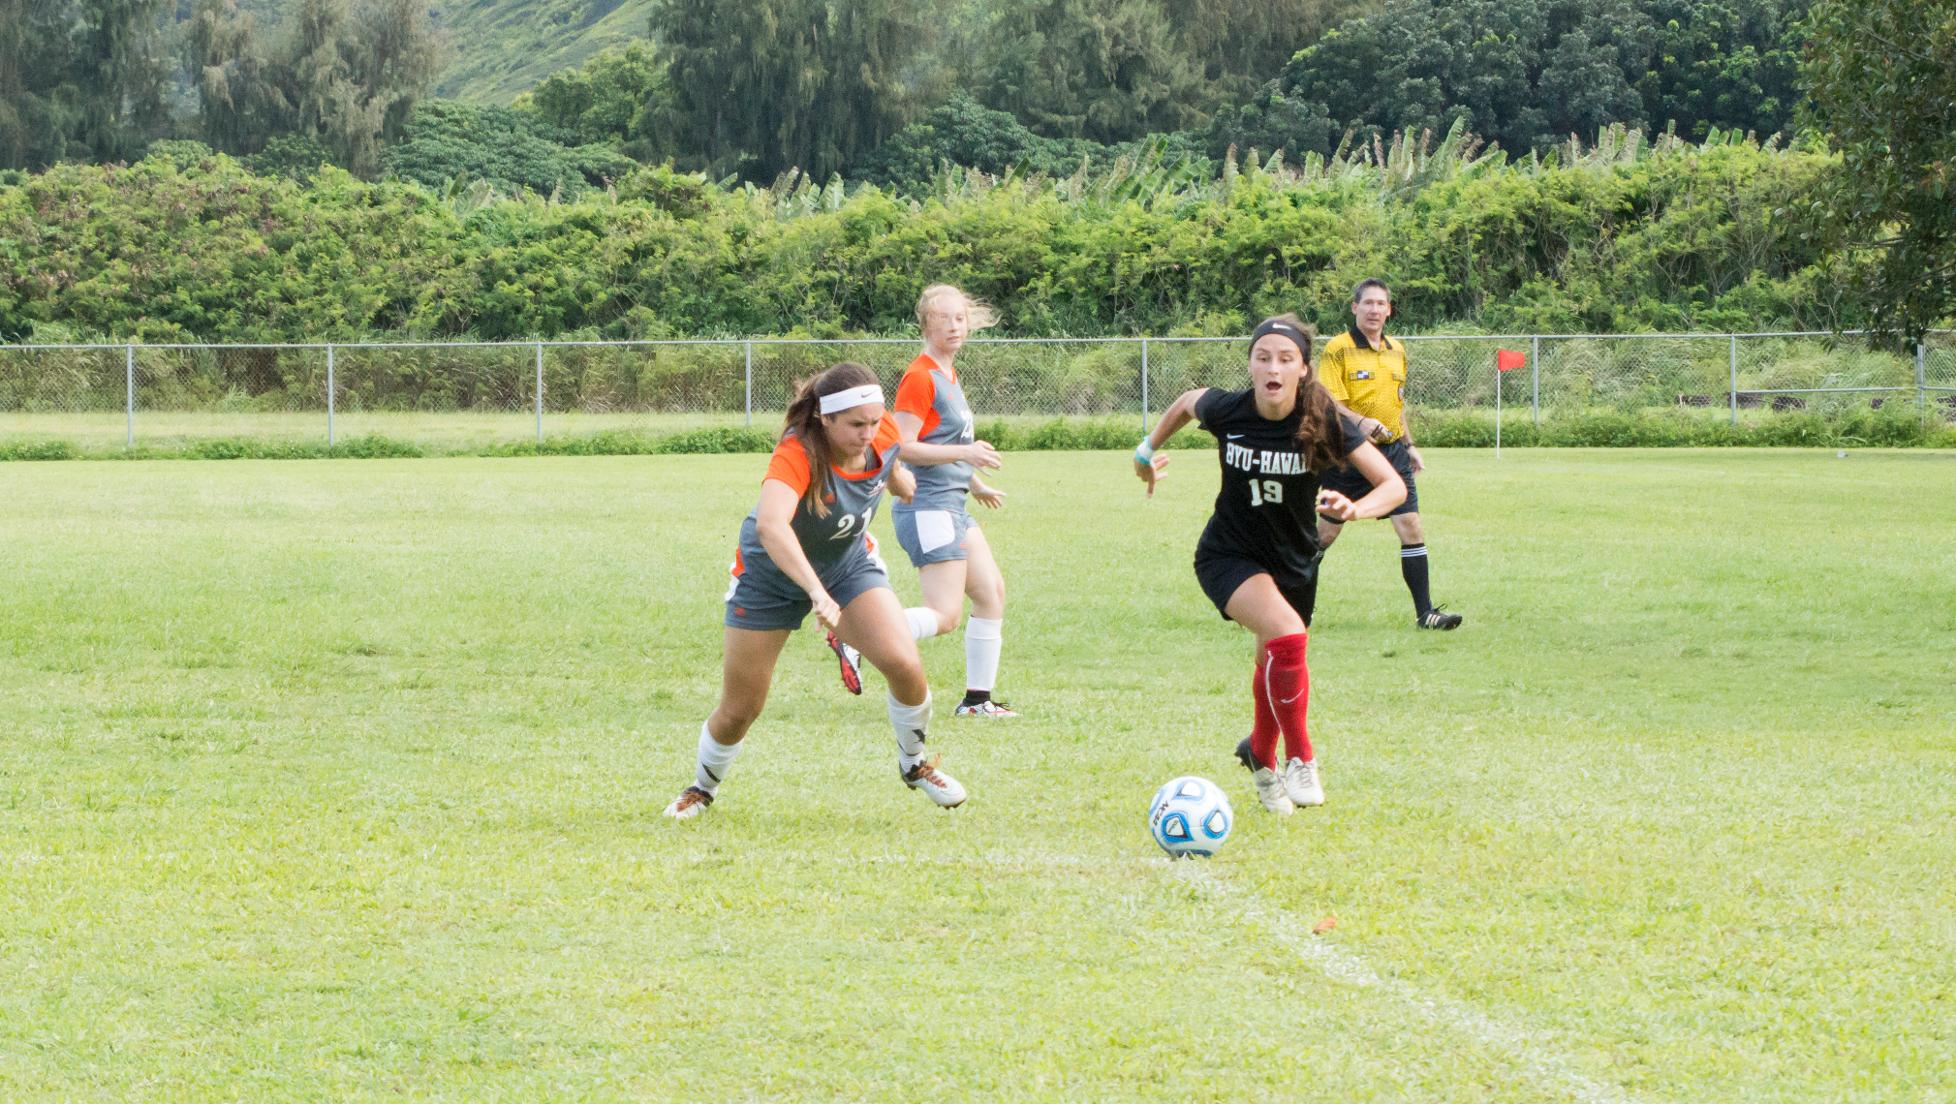 Seasiders shutout by Sunbirds